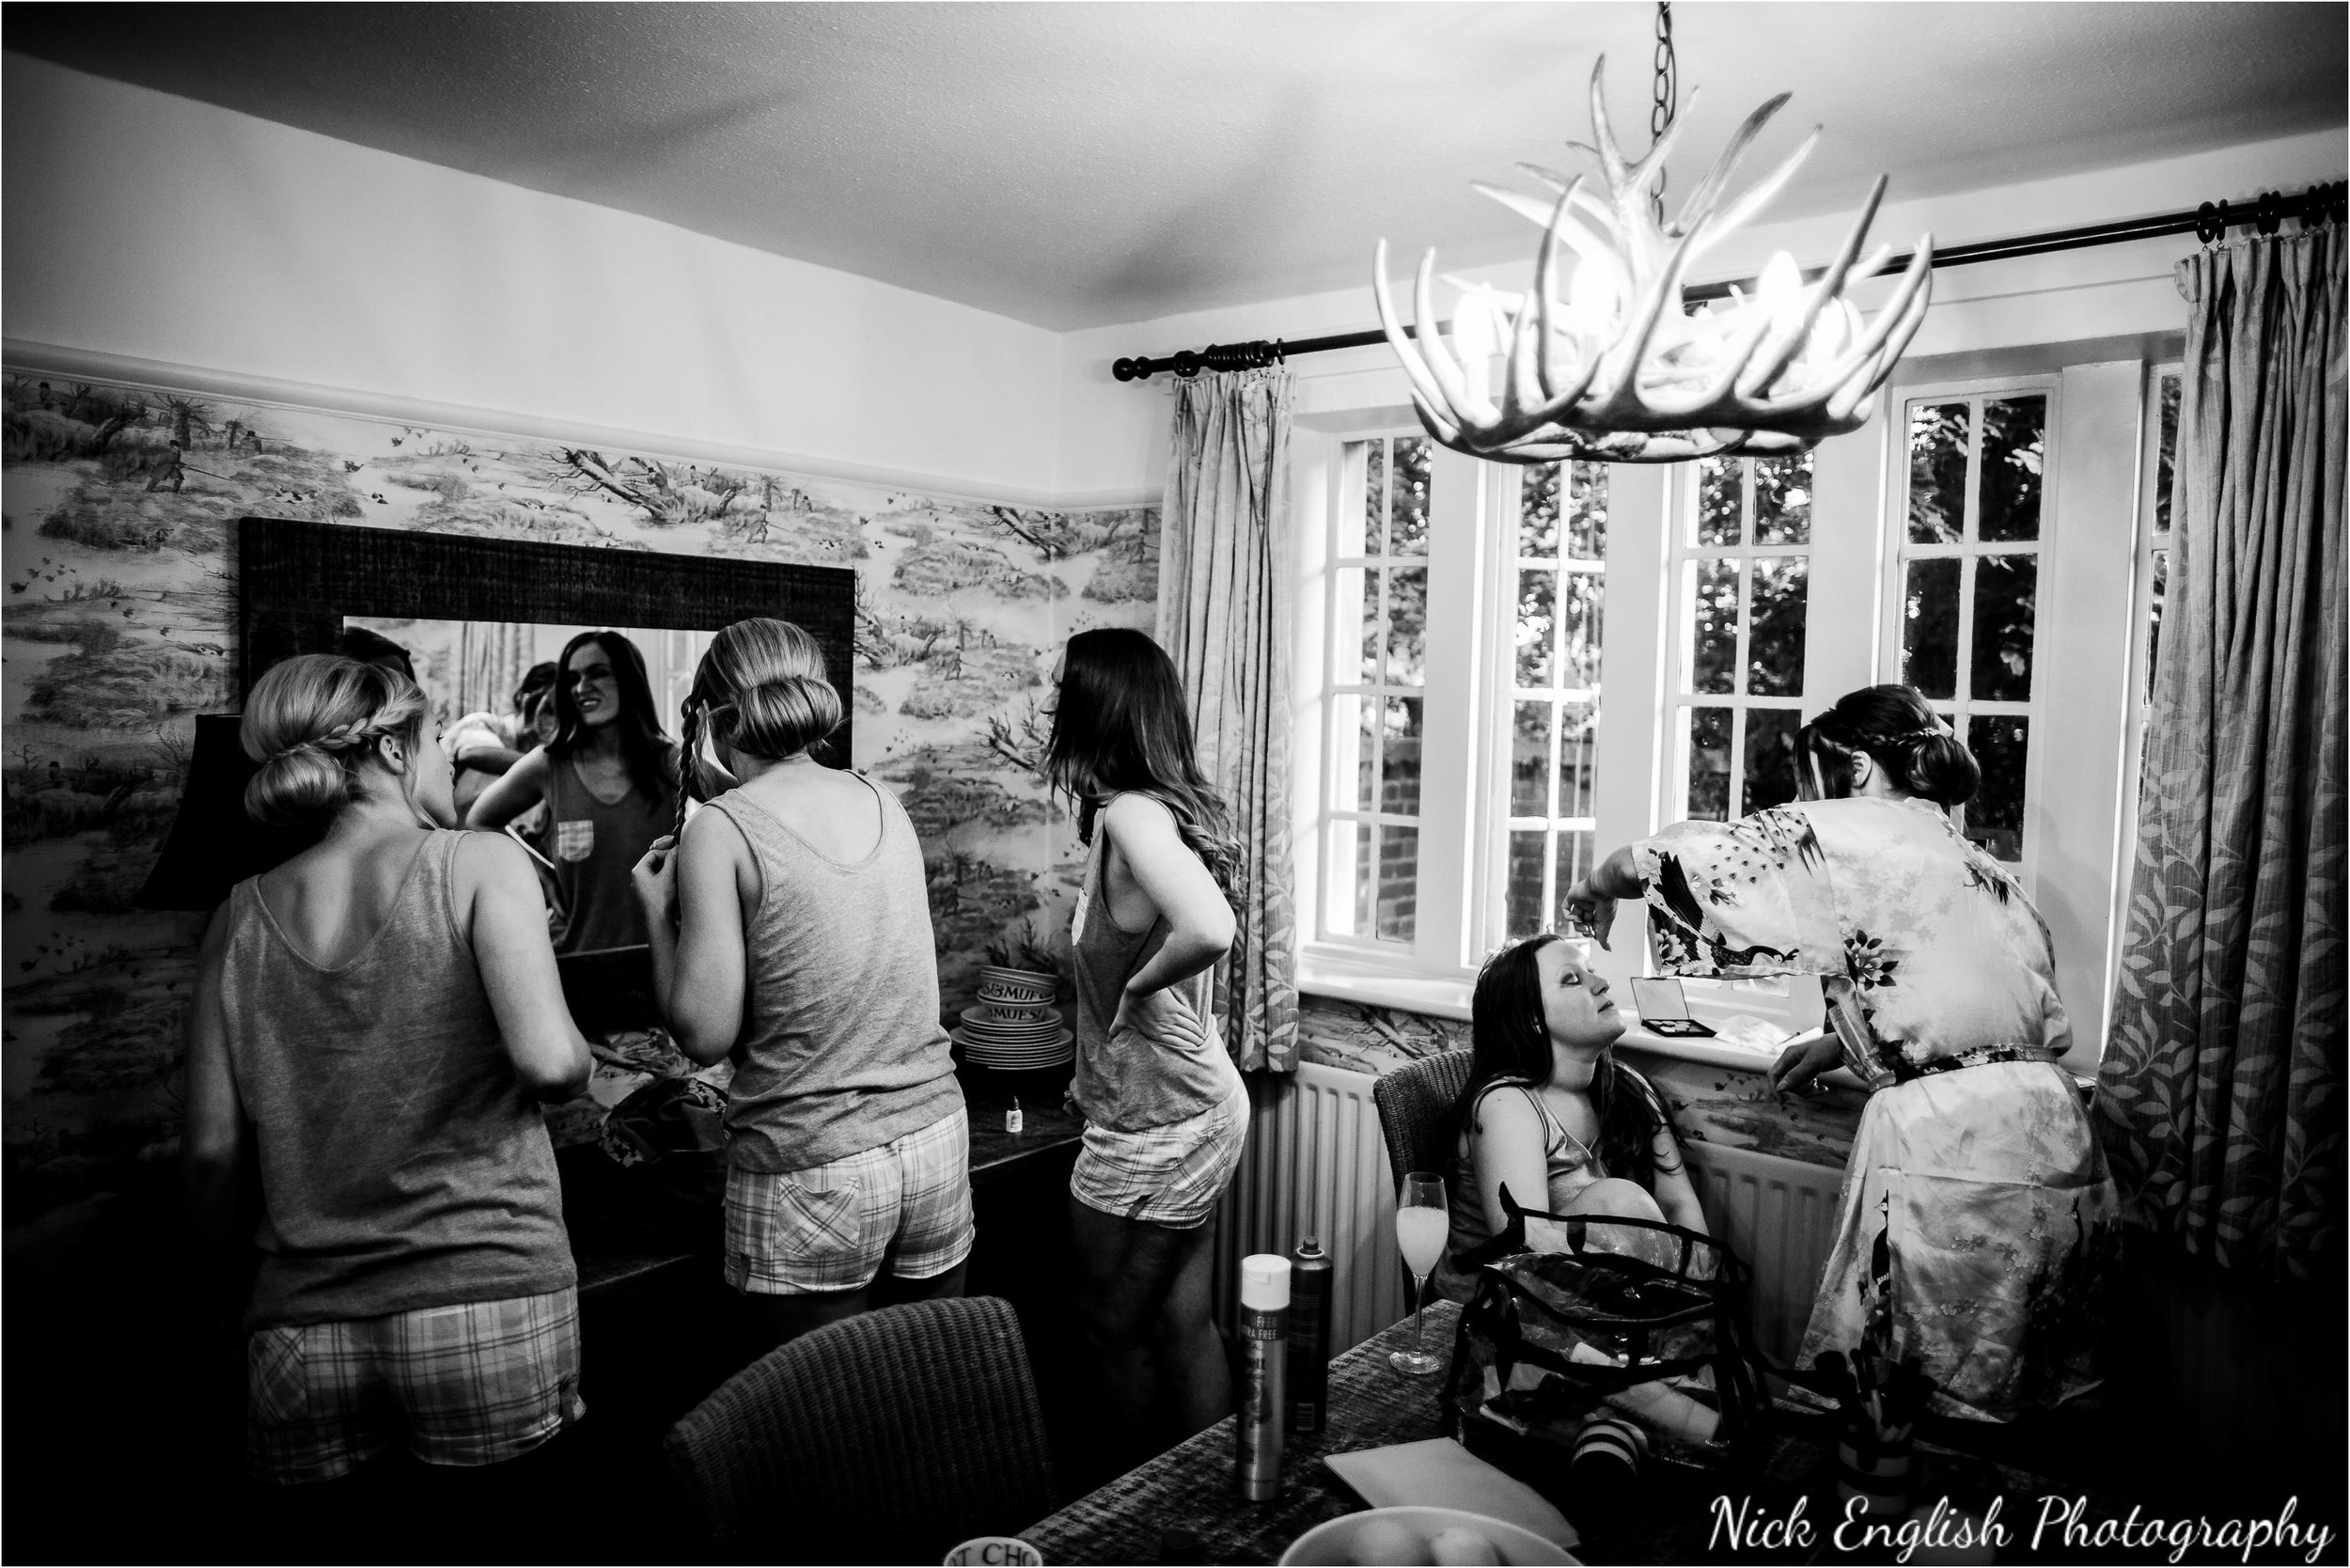 Eaves_Hall_Wedding_Photographs_Nick_English_Photography-4.jpg